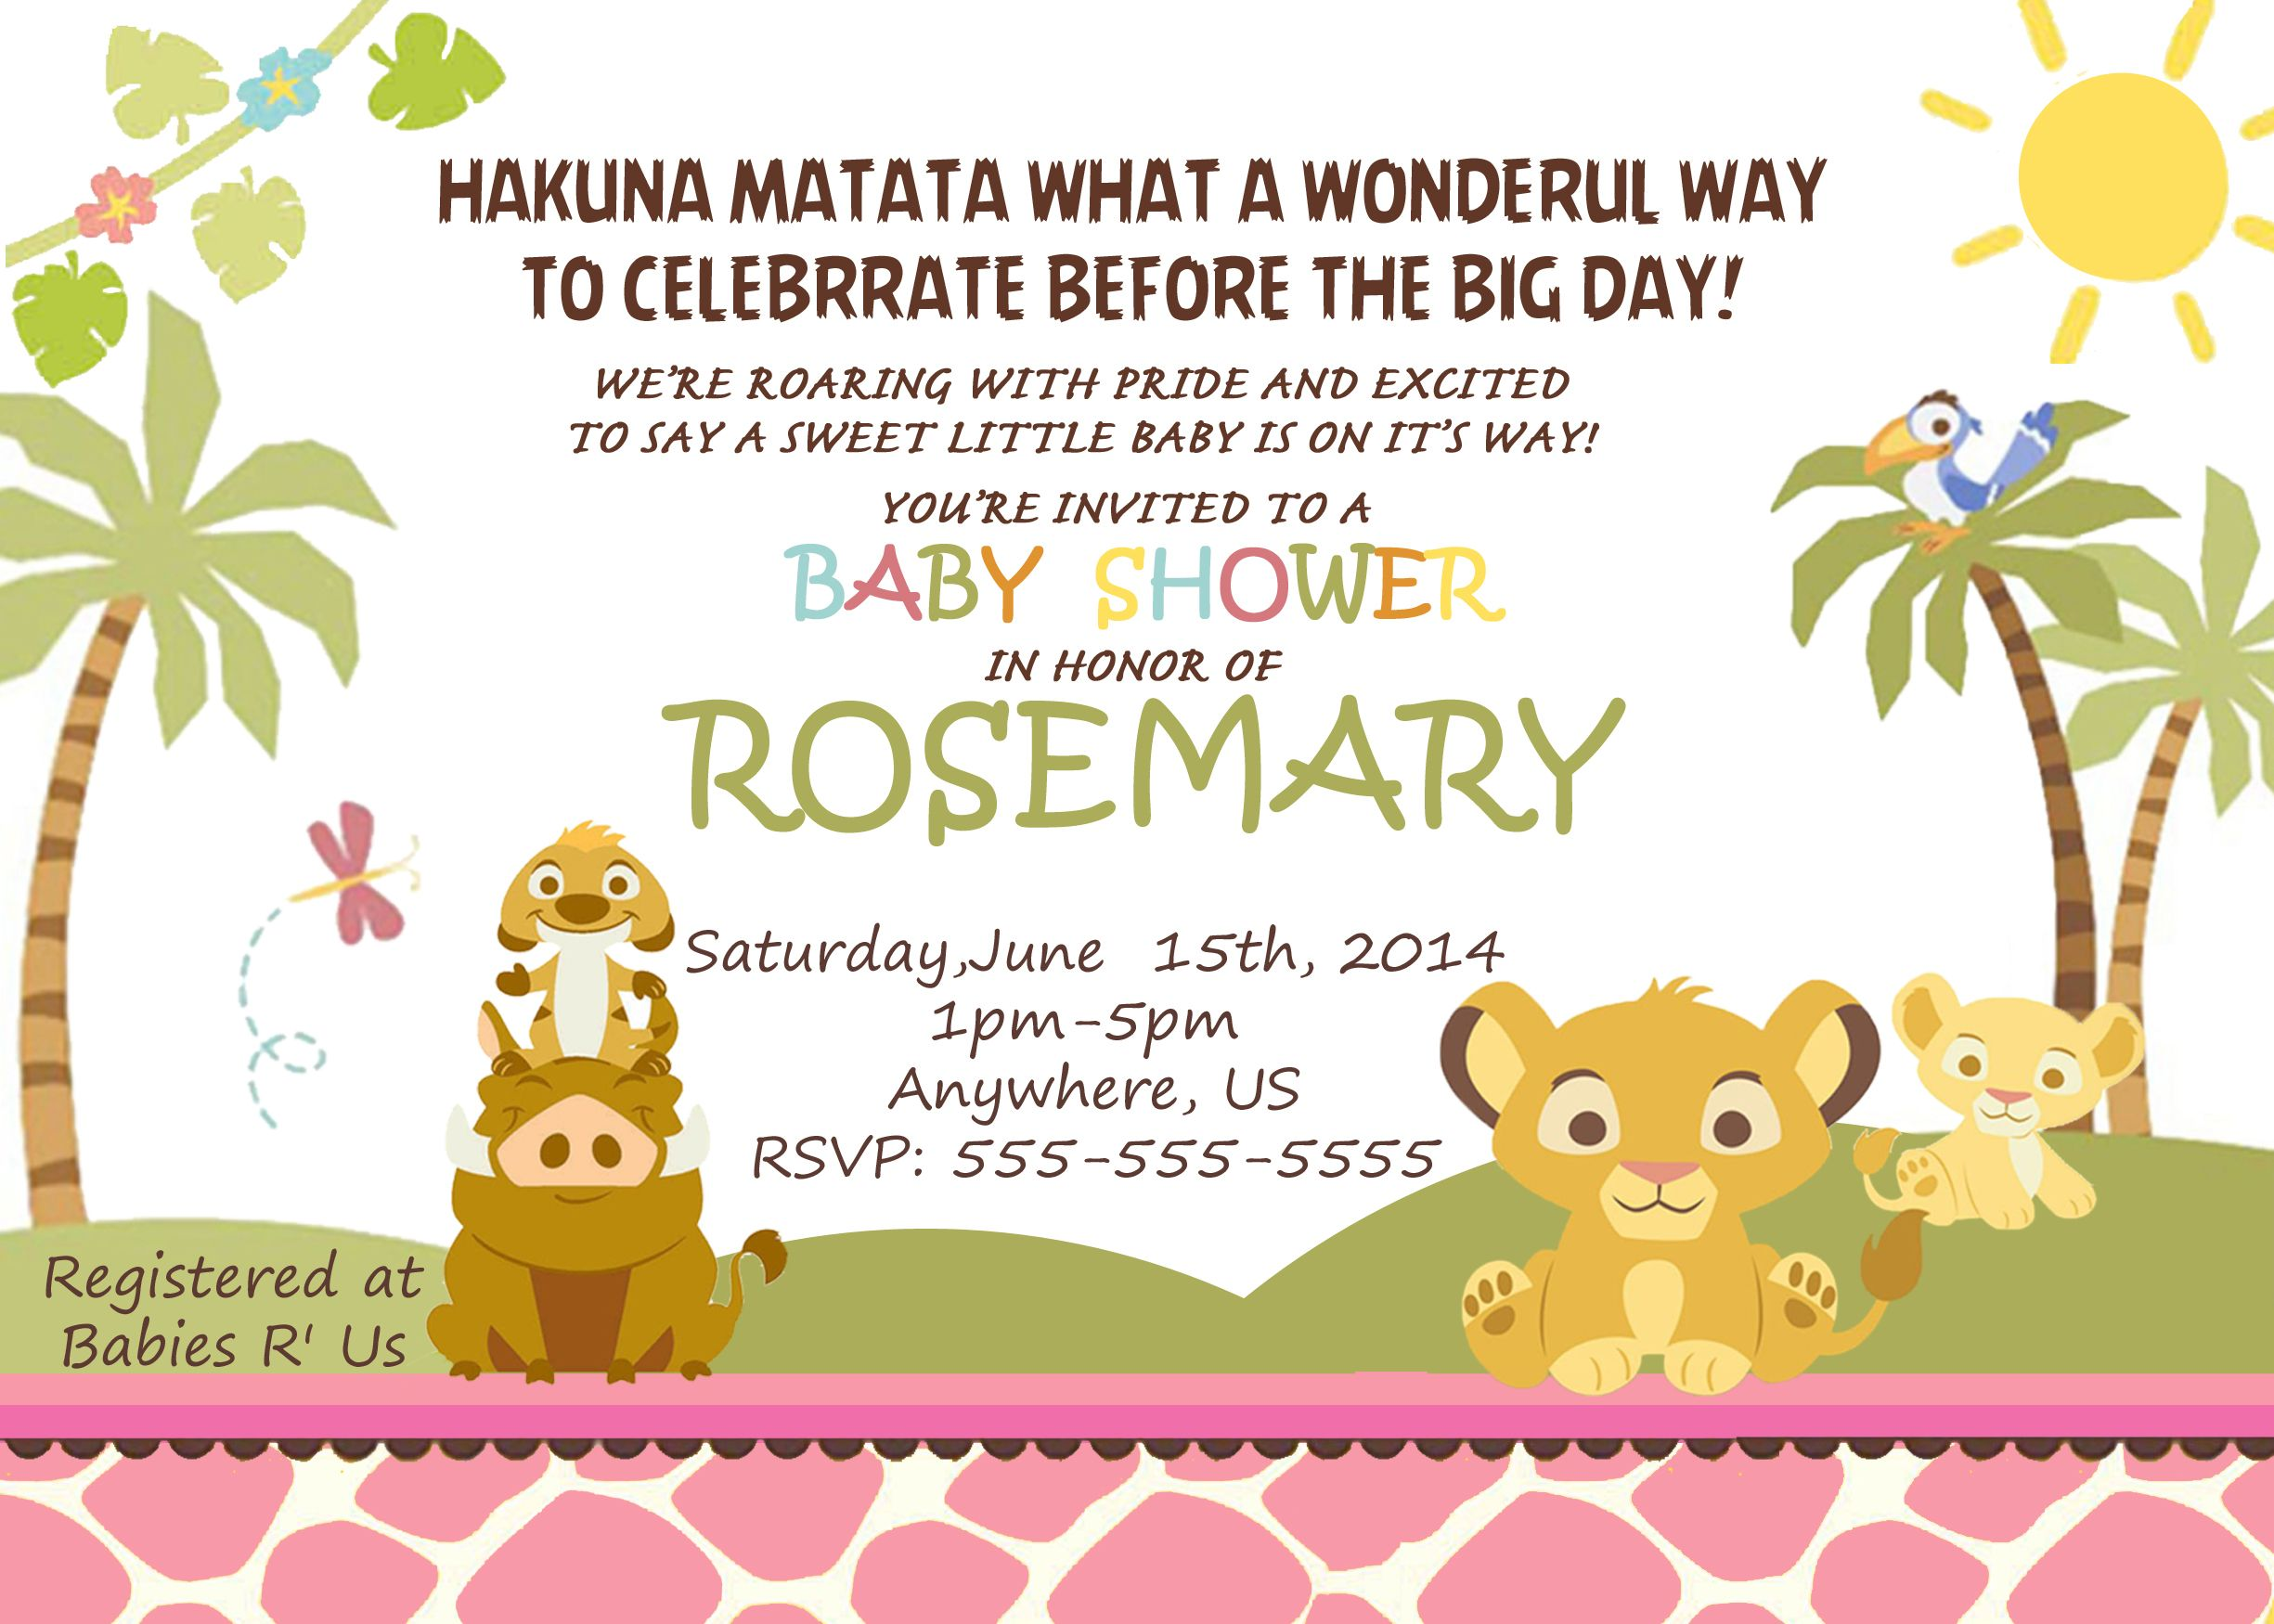 Pink Simba Lion King Baby Shower Invitations $8 99 available at